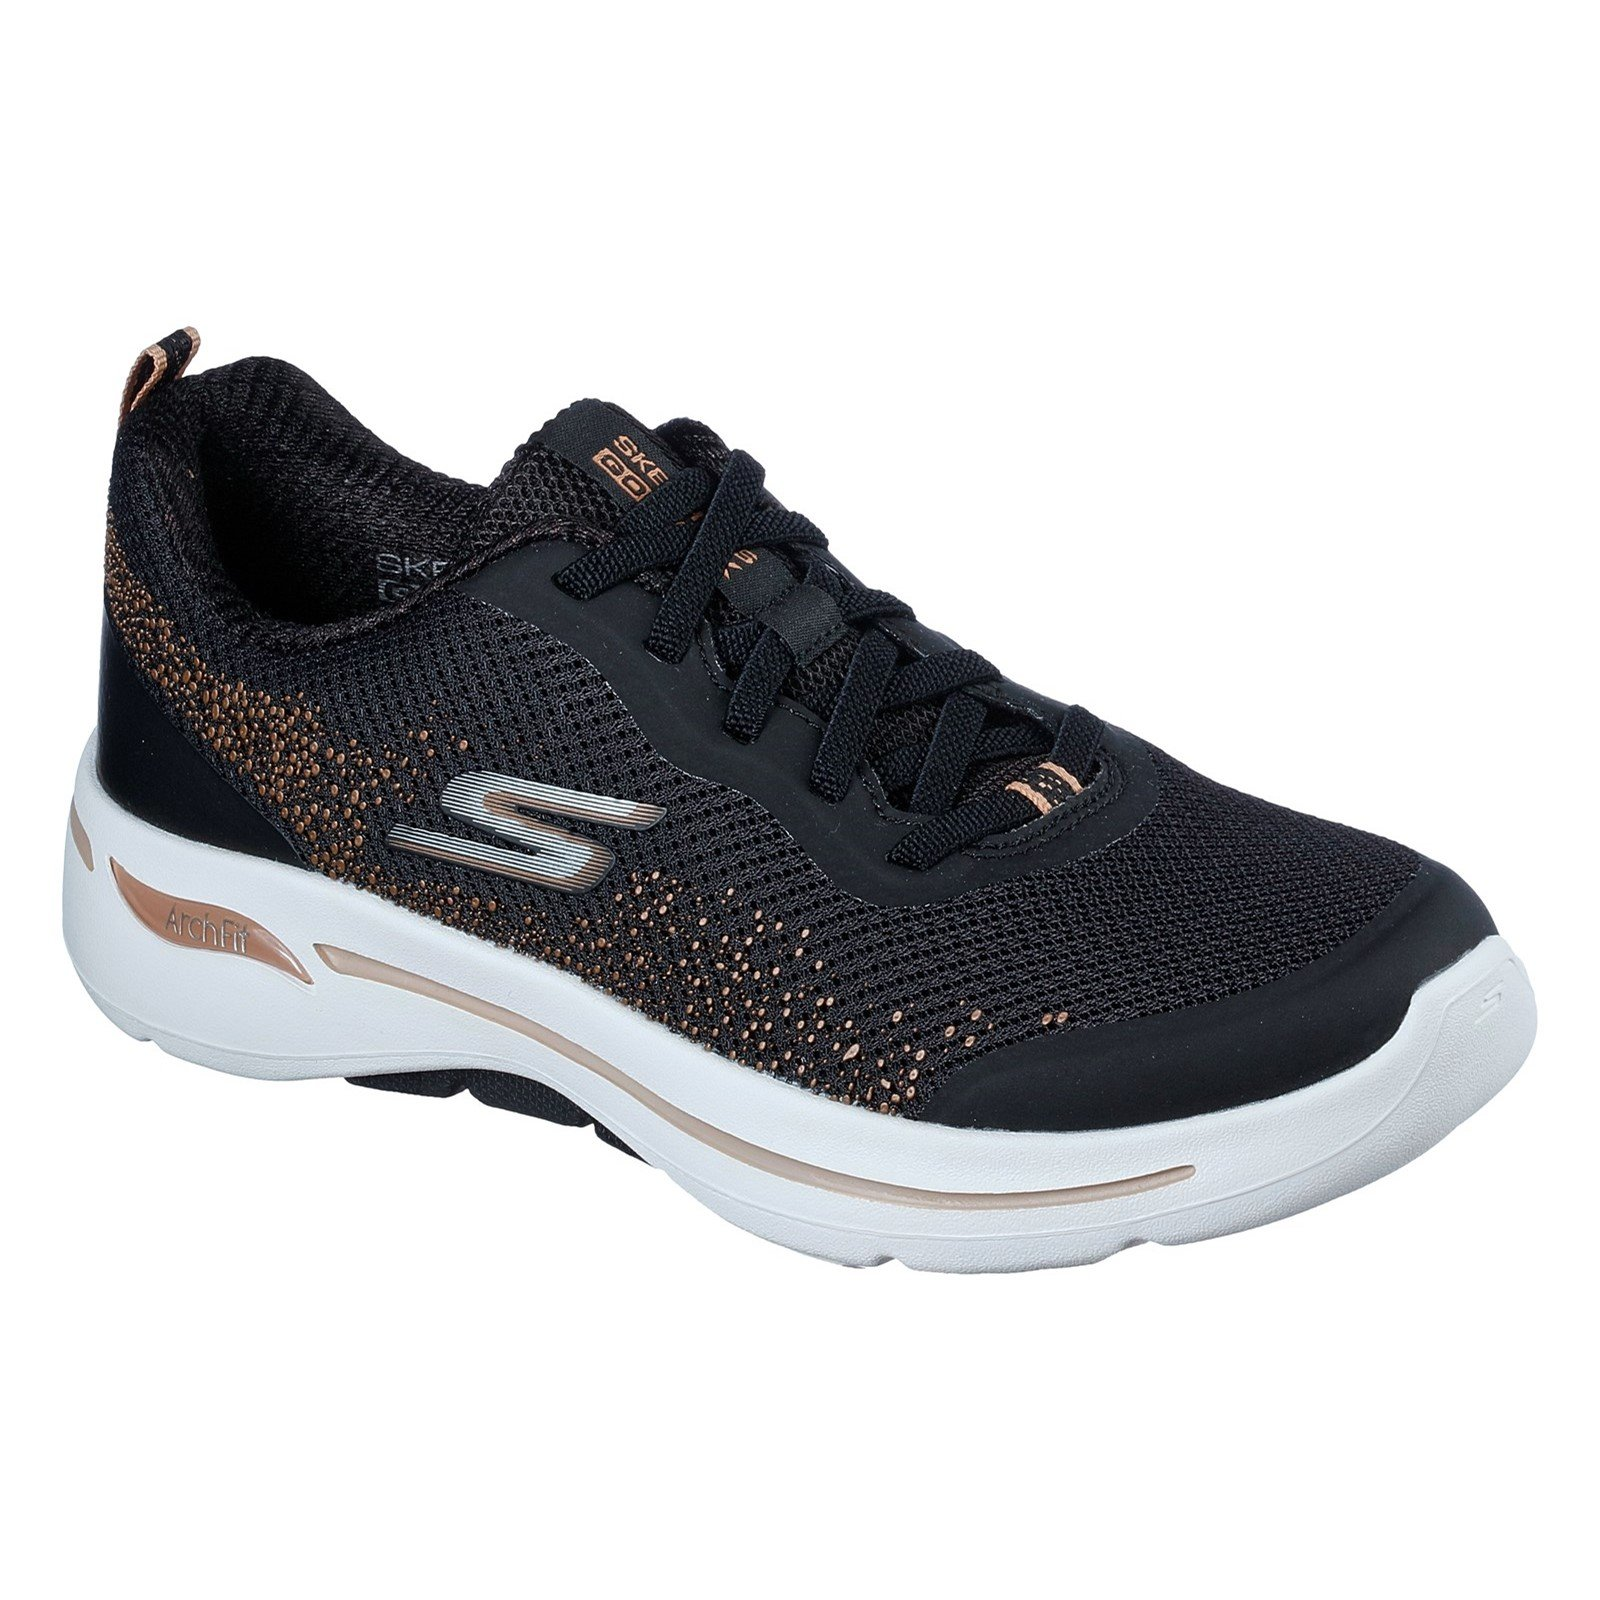 Skechers Women's Go Walk Arch Fit Flying Stars Trainer Various Colours 32841 - Black/Gold 5